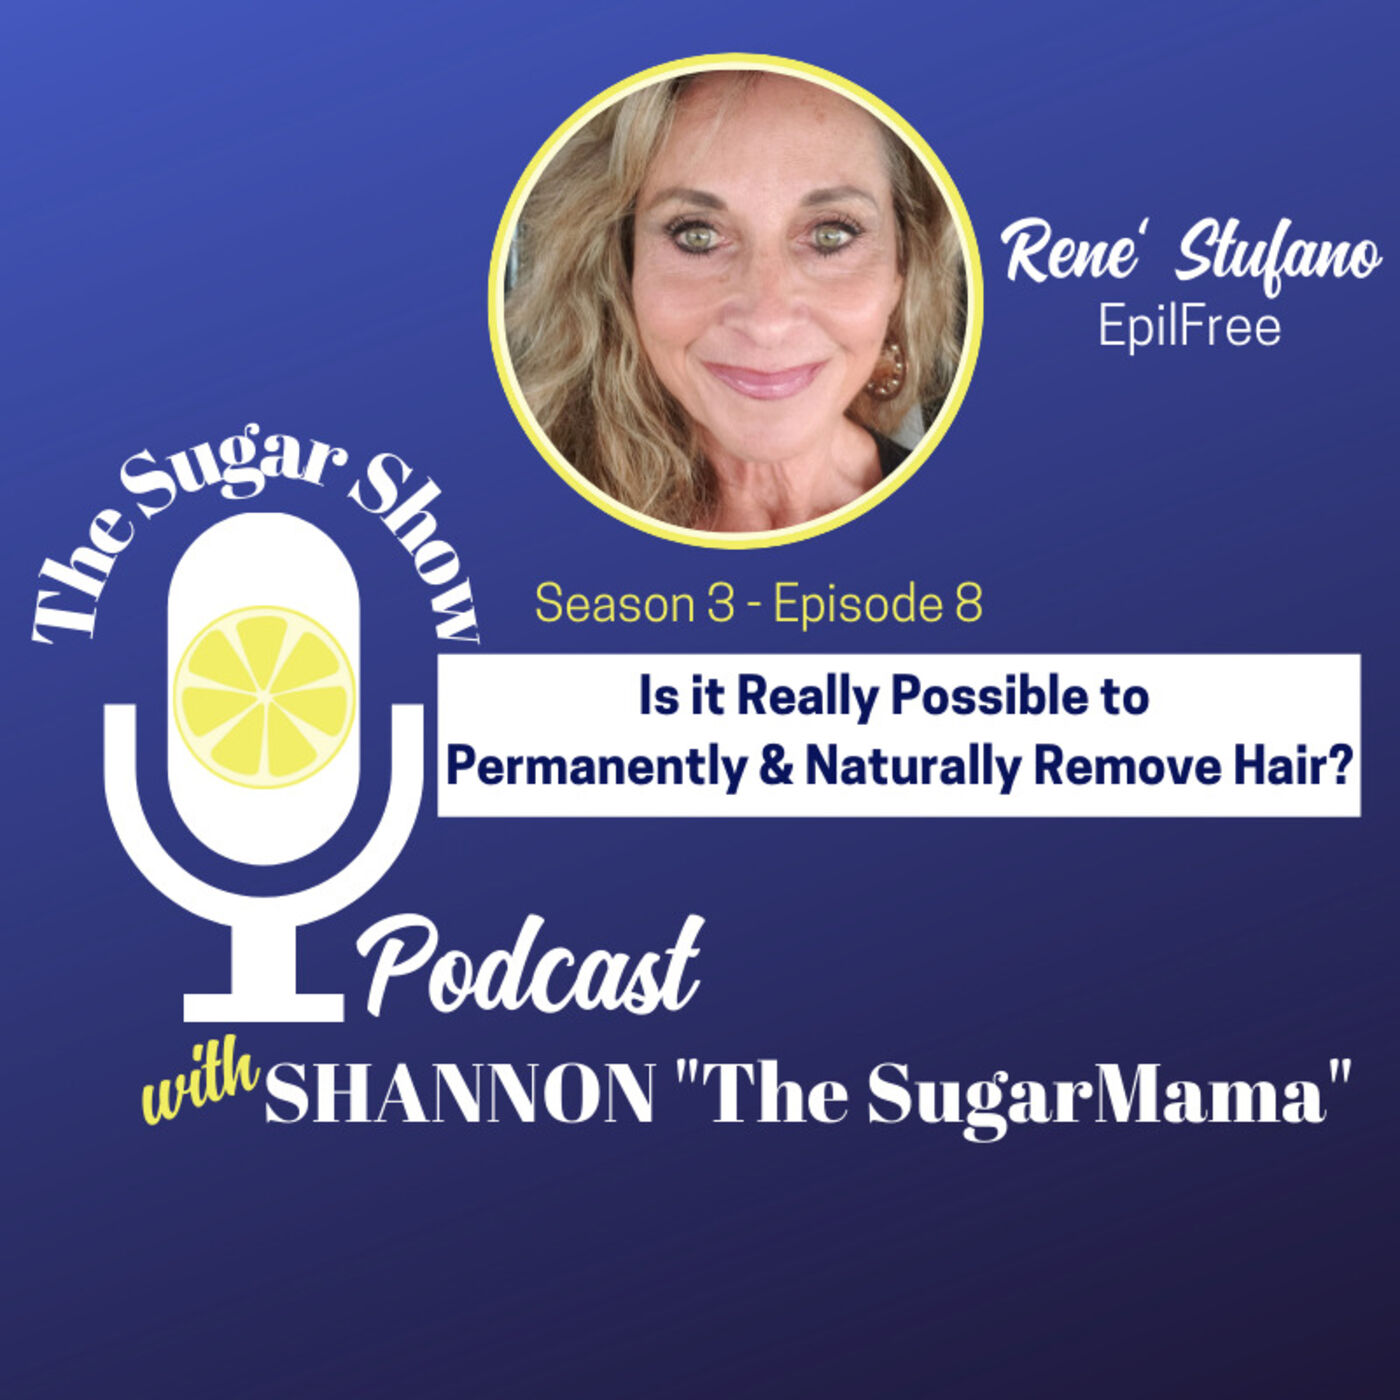 The SugarShow: S3E8 Is It Really Possible to Permanently & Naturally Remove Hair?